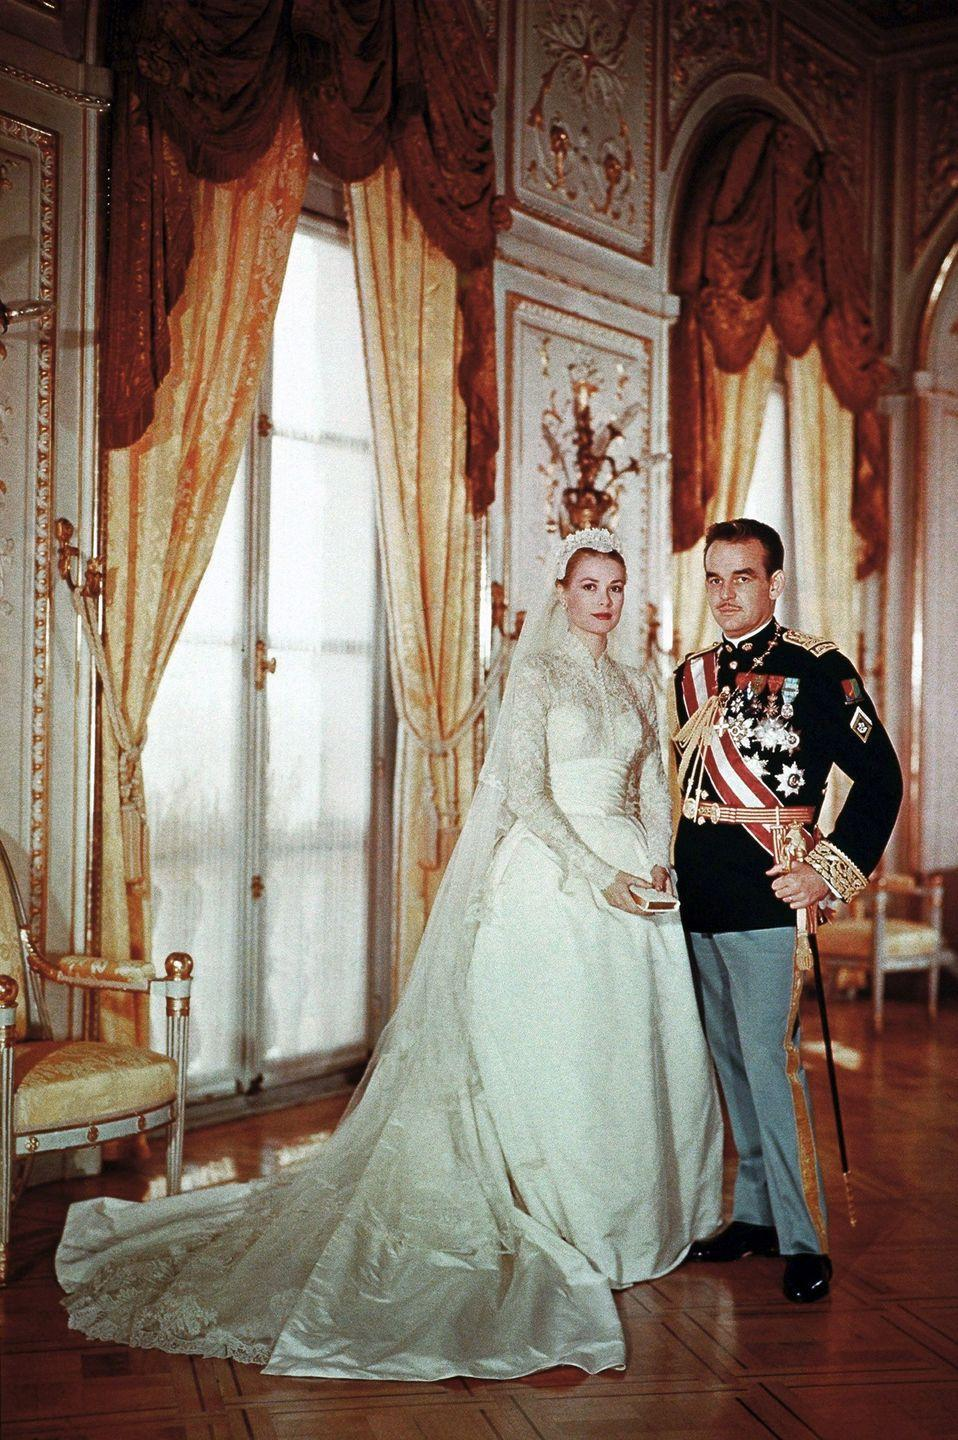 <p>Grace Kelly wore a gown by MGM costumer Helen Rose, who had dressed her for her films <em>High Society</em> and <em>The Swan</em>. The most expensive dress ever made by Helen Rose, the gown used lace that was over one hundred years old, as well as 25 yards of silk taffeta, and 100 yards of silk net. </p><p>Kelly's famously glamorous dress inspired bridal looks for Kate Middleton, Kim Kardashian (in her wedding to Kris Humphries), and Ivanka Trump.<br></p>